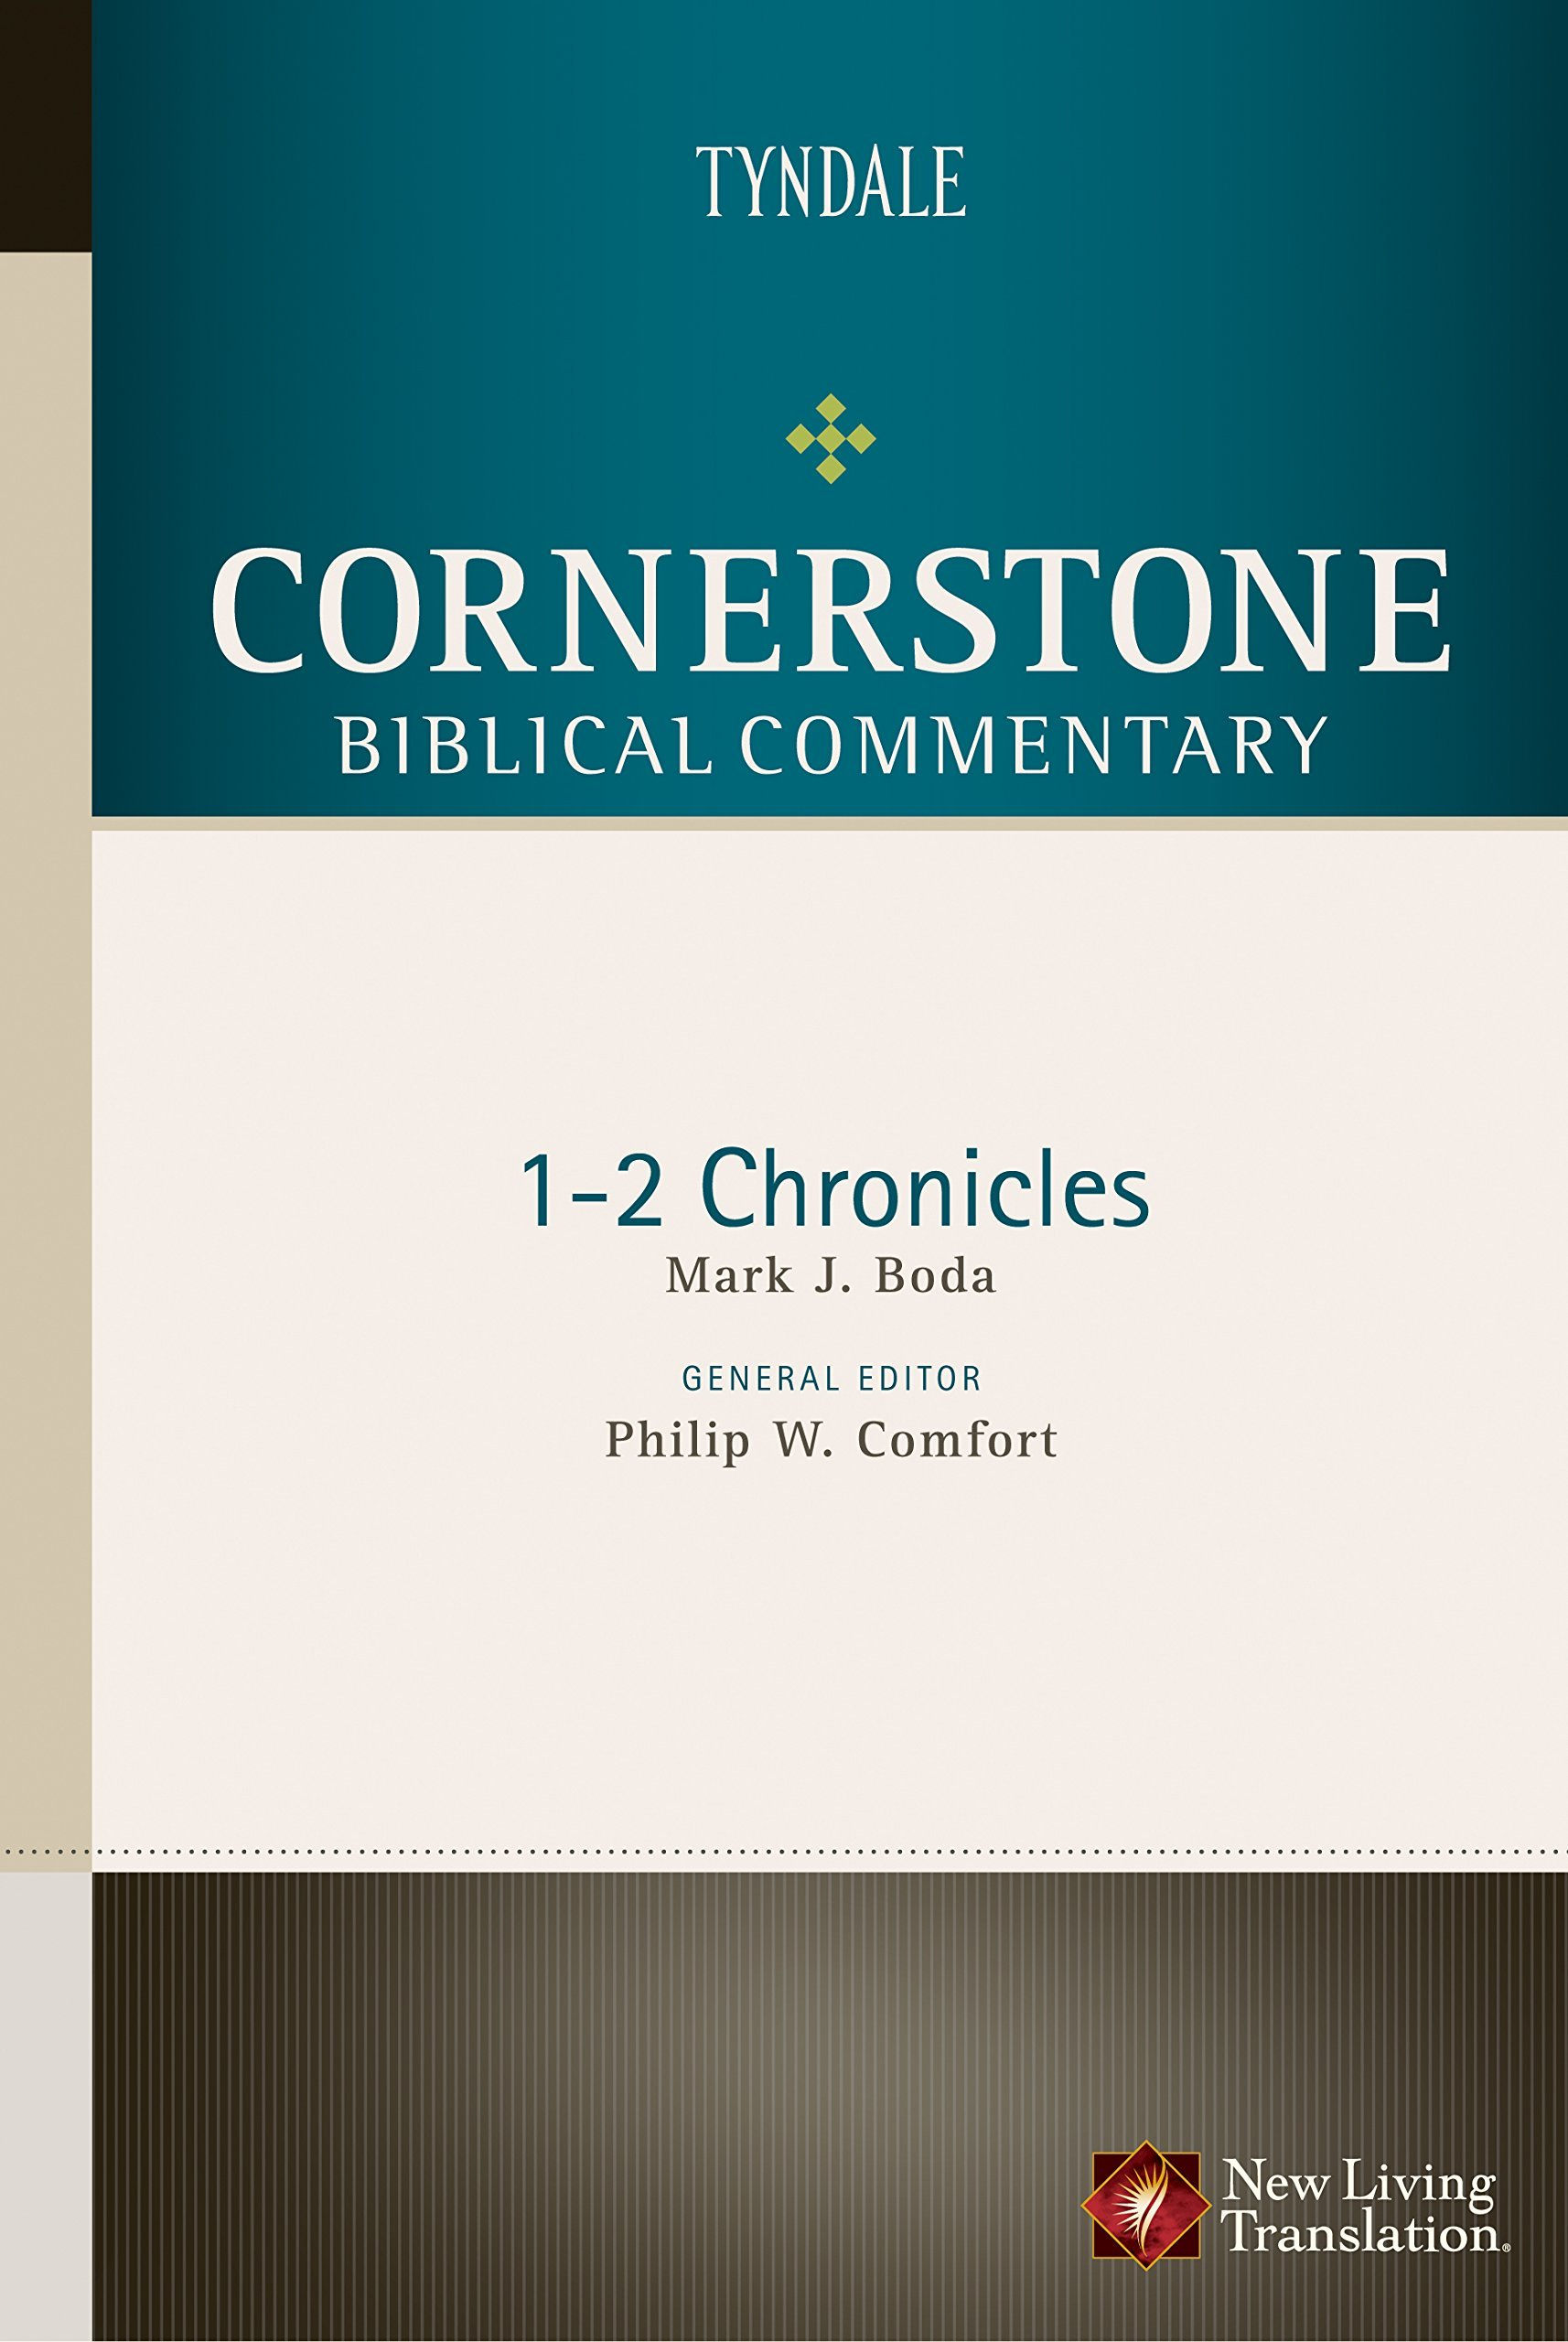 Cornerstone Biblical Commentary – 1-2 Chronicles by Mark Boda